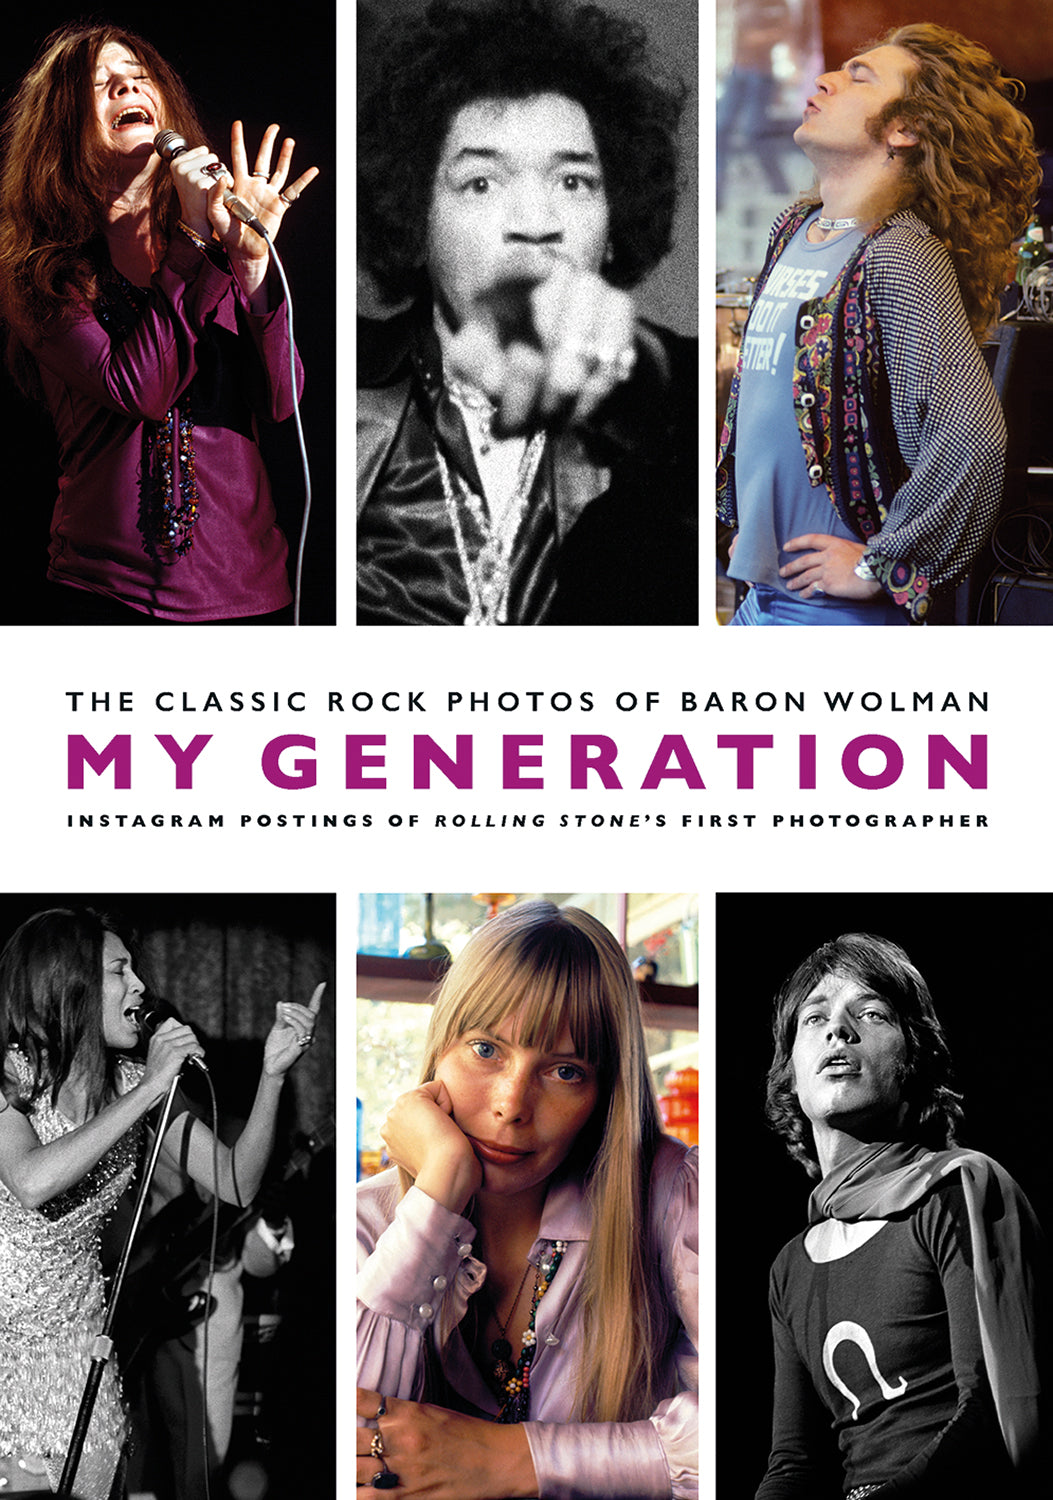 My Generation: The Classic Rock Photos of Baron Wolman